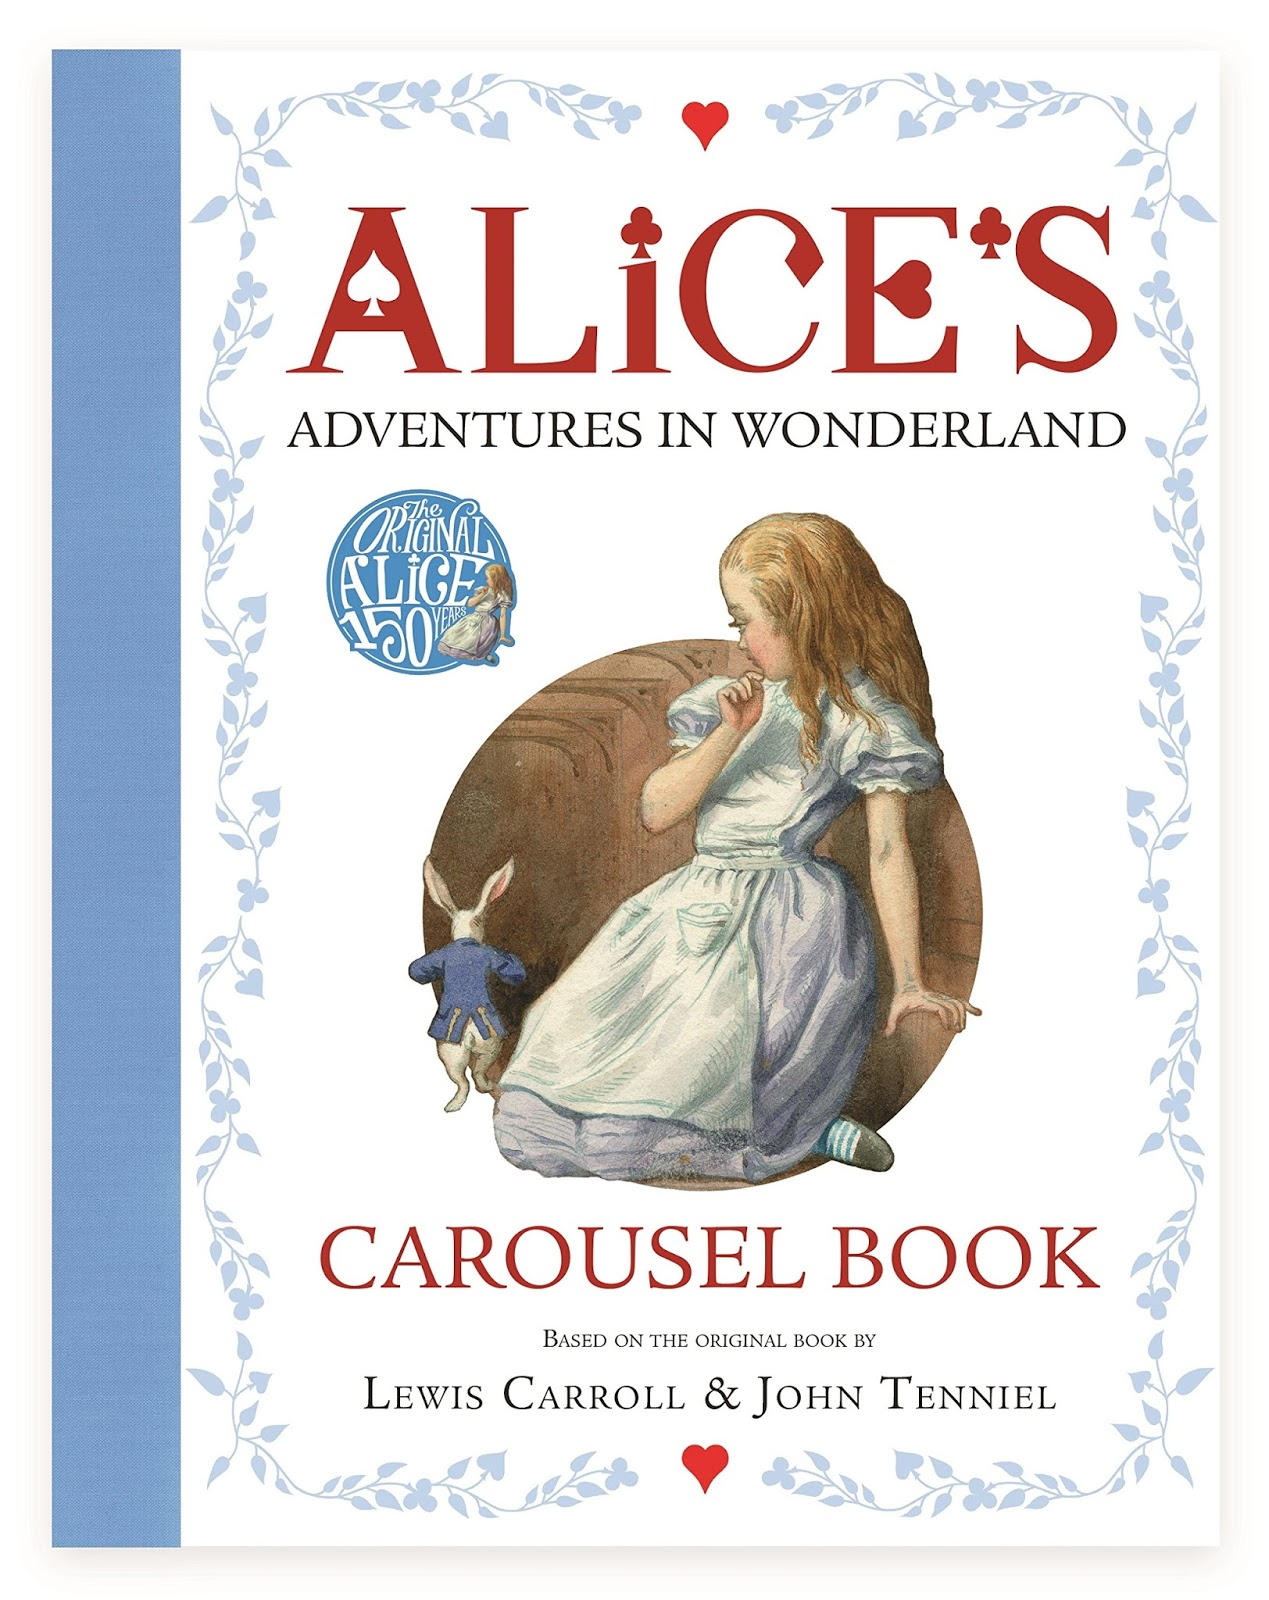 What is the summary of Alice's Adventures in Wonderland?